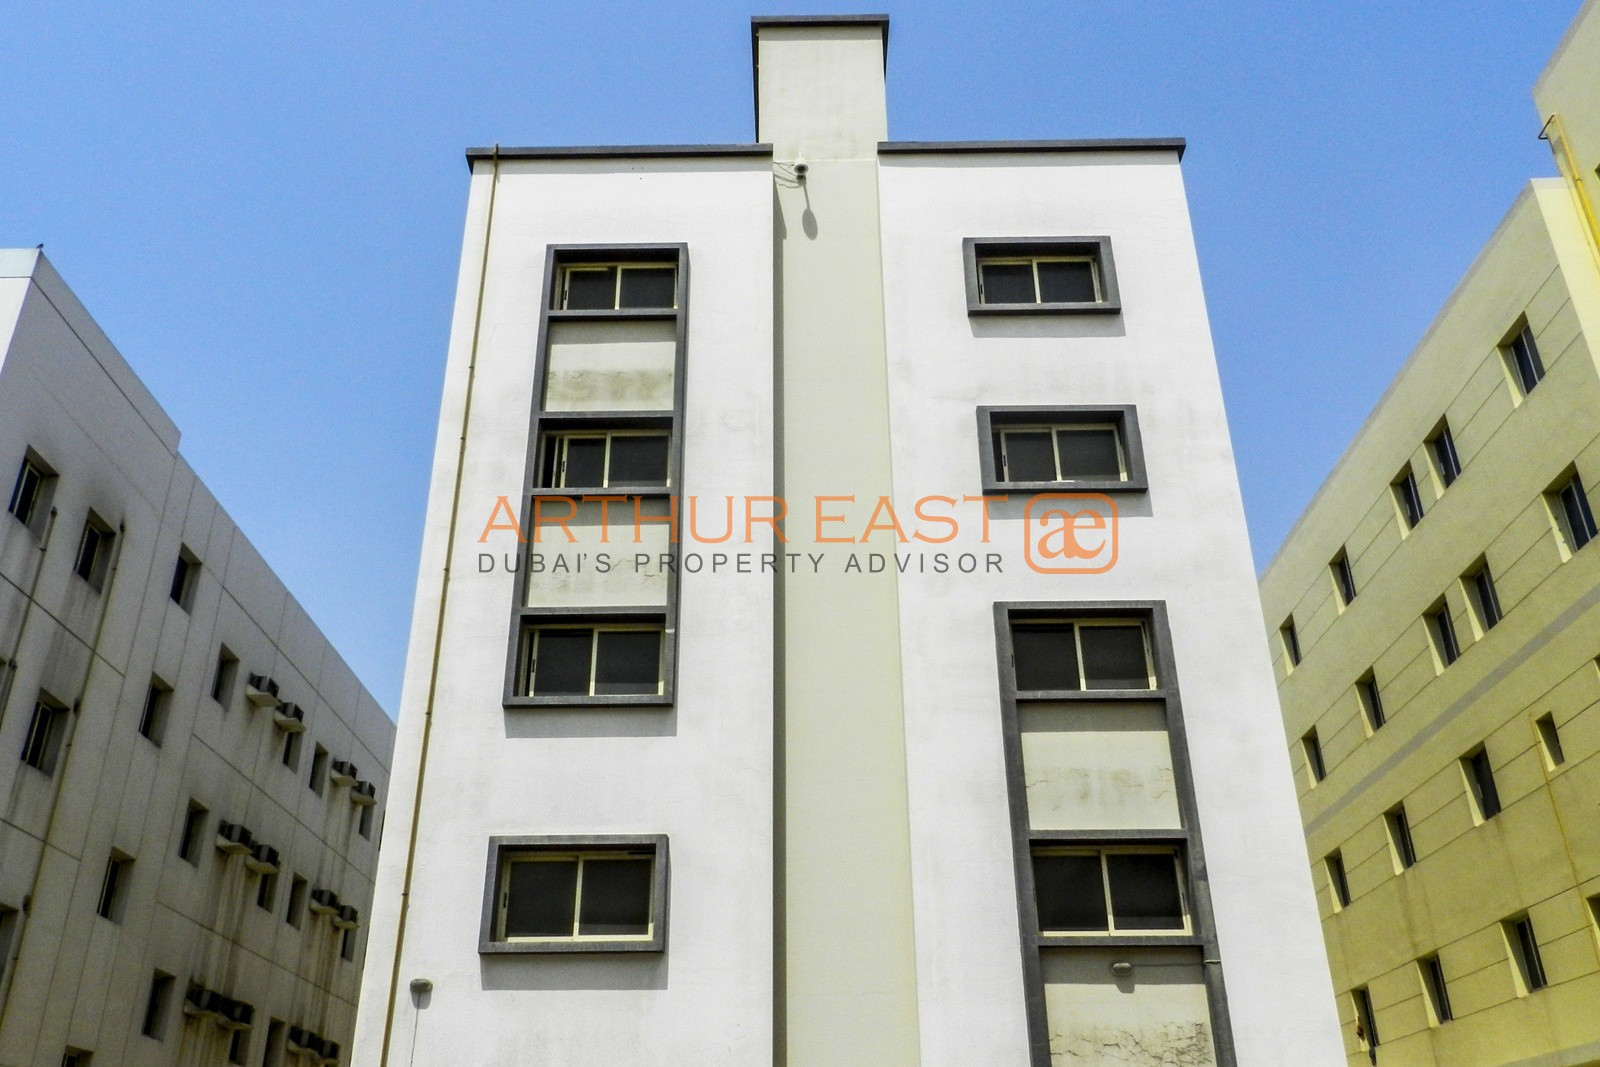 affordable-jebel-ali-rooms-aed-2520room